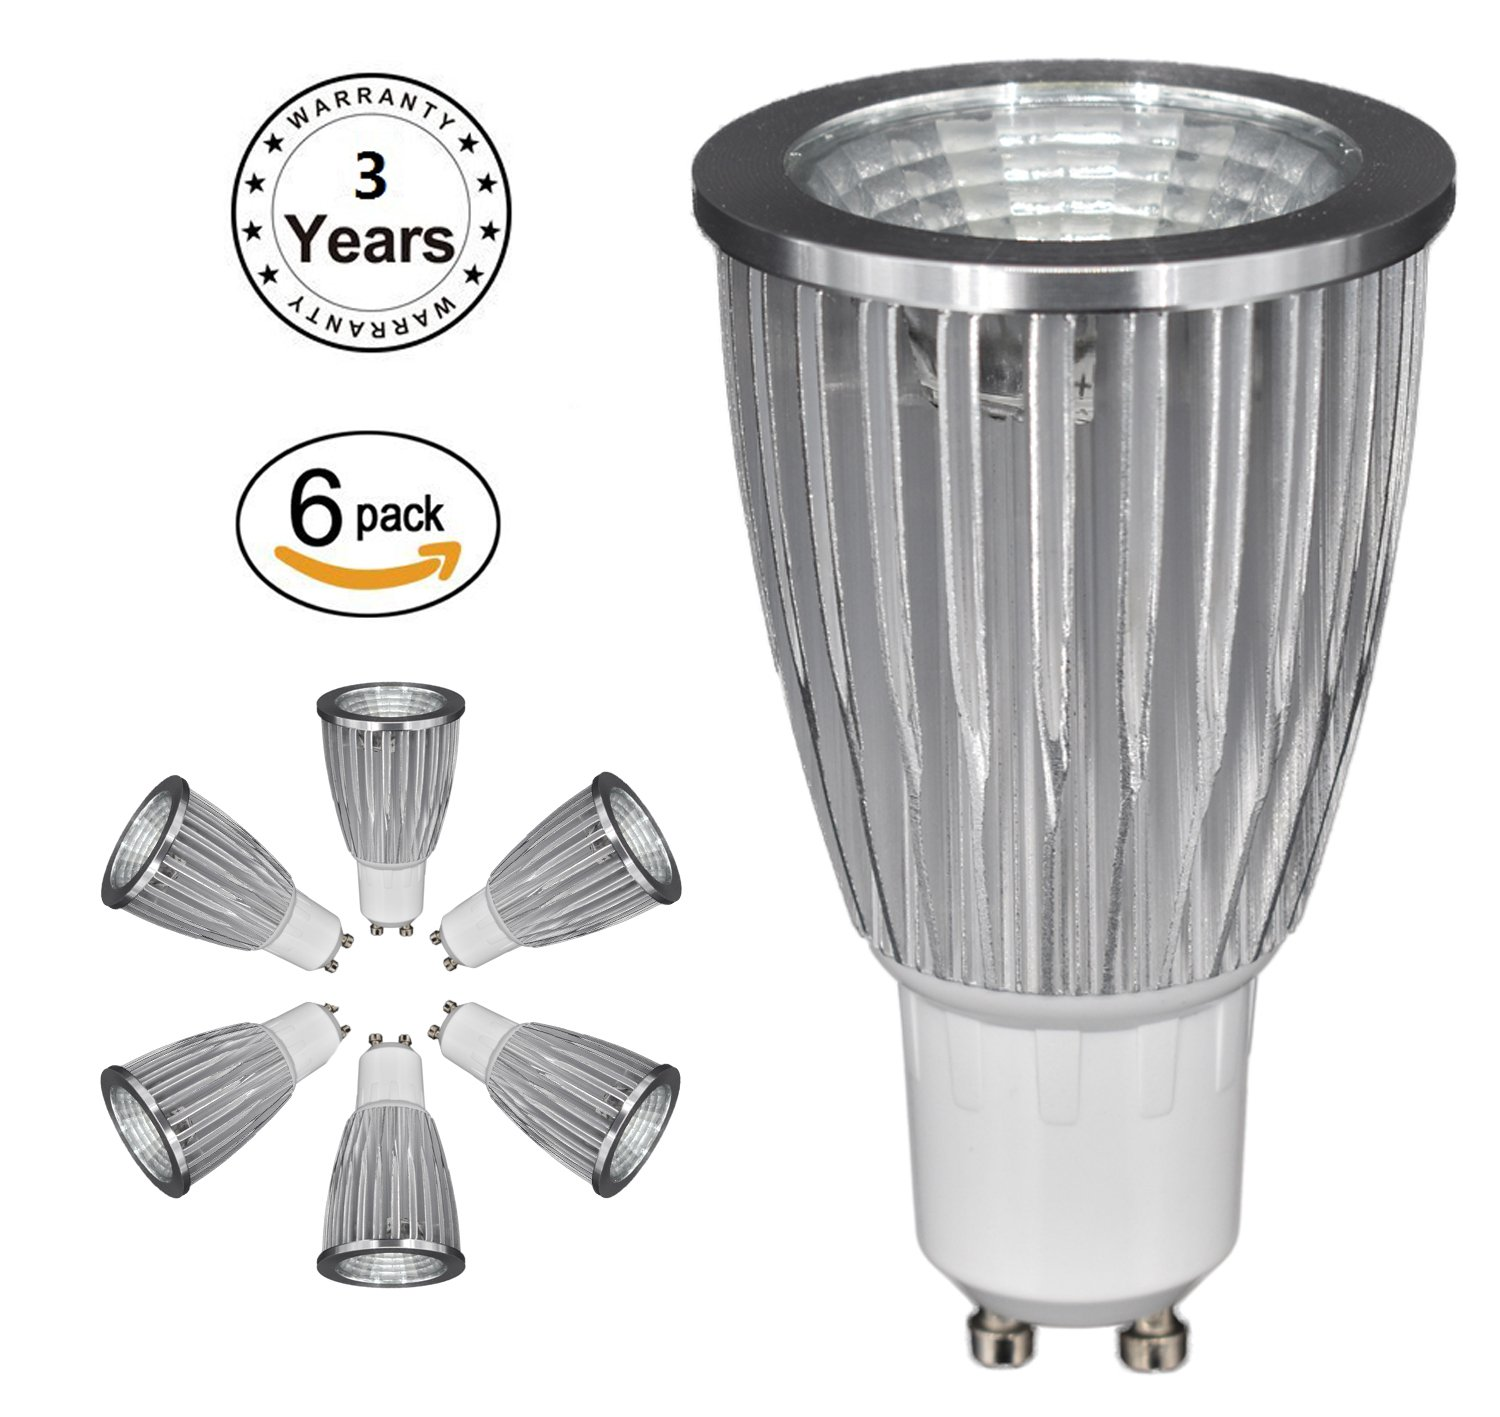 Manufacturers' Direct Sales,GU10 LED Light Bulb, COB, IC Constant Current Intelligent Power Supply,Non-dimming,3W,5W,7W, 3 YEARS WARRANTY (White, 7W 6 of pack)